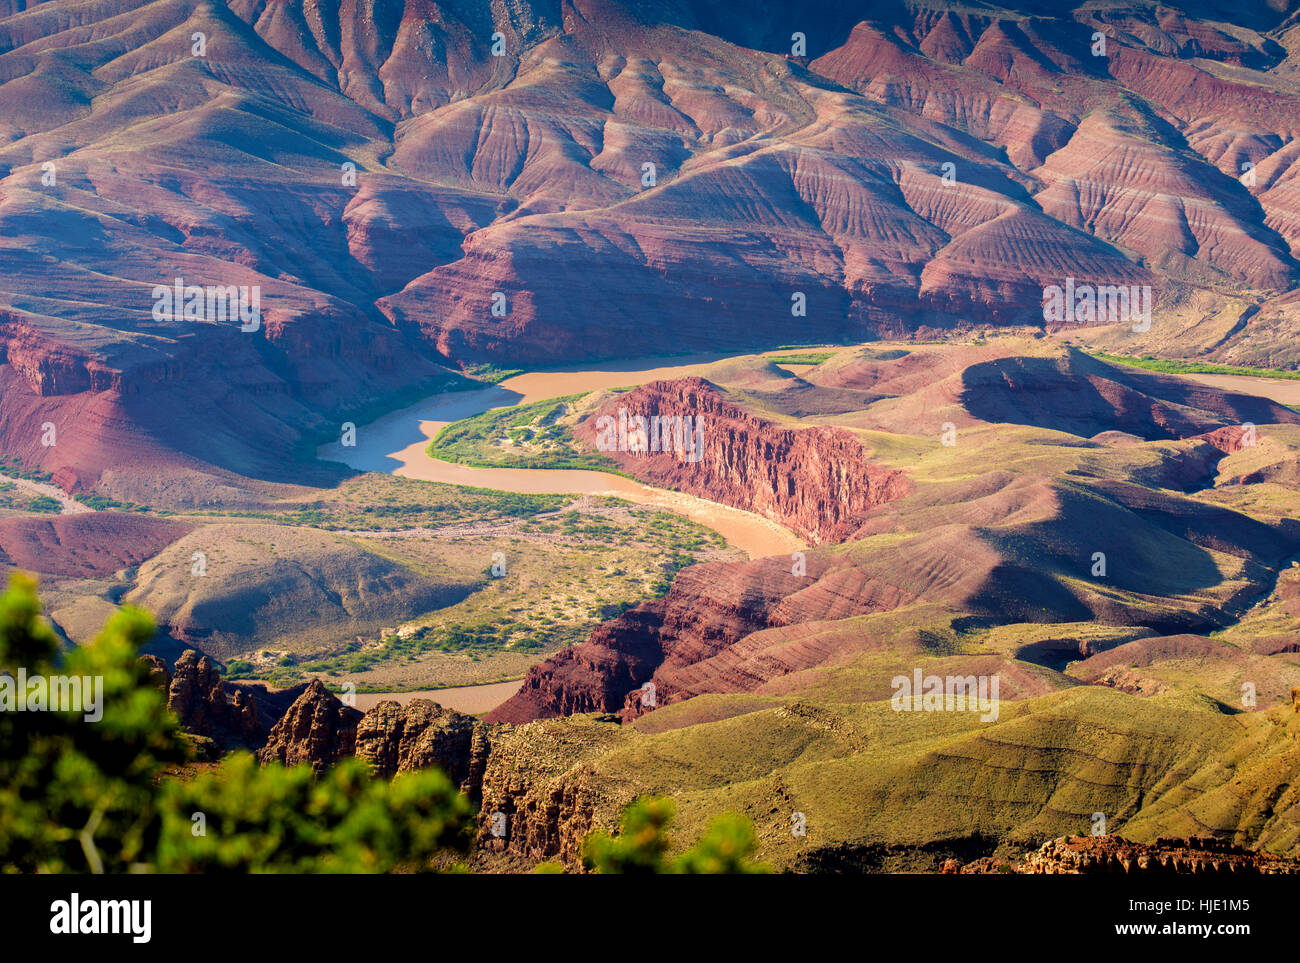 View at sunset from Lipan Point, Grand Canyon National Park, Arizona, USA - Stock Image